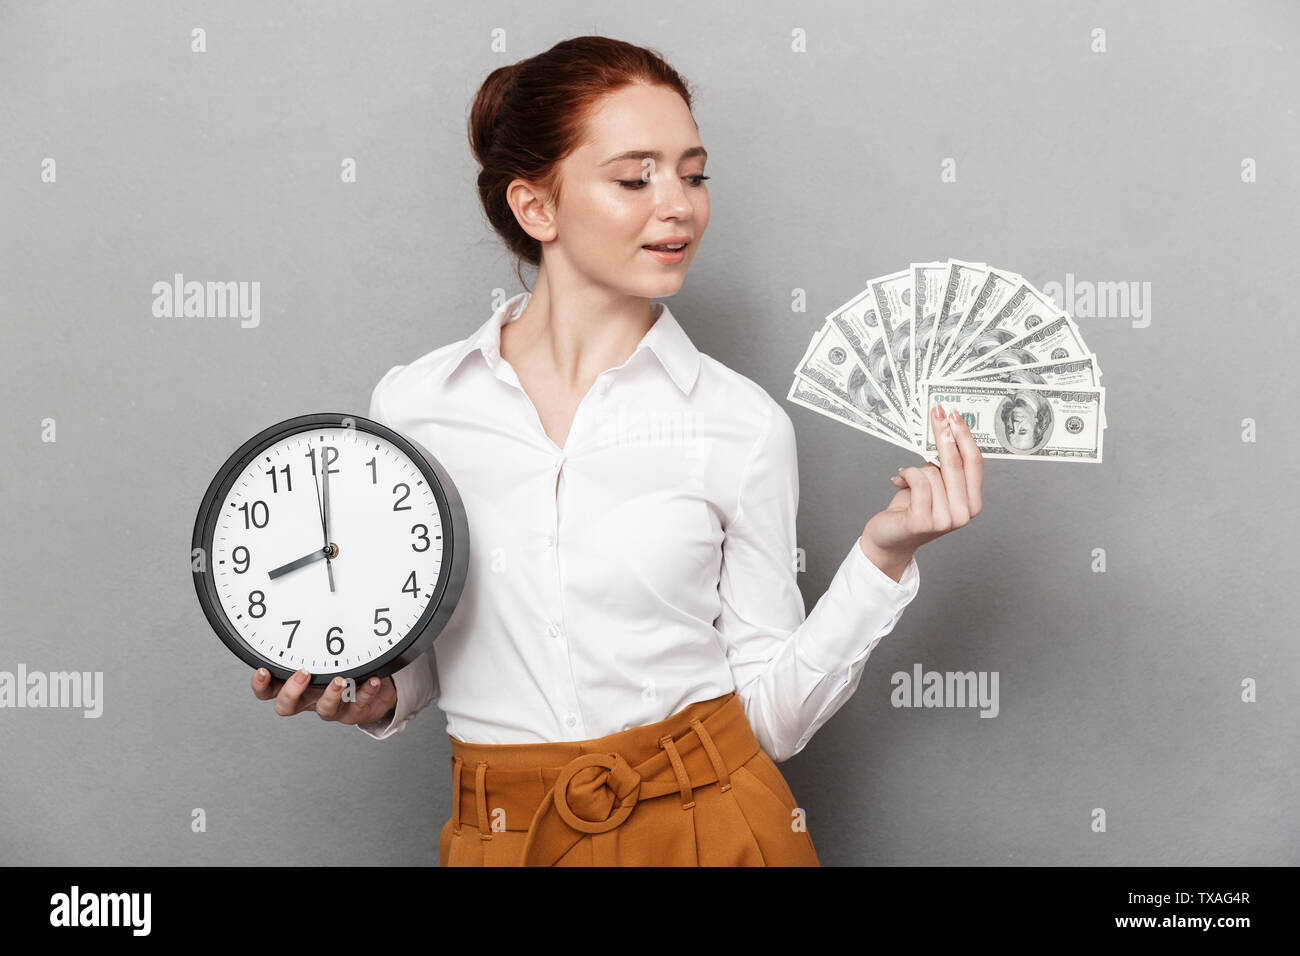 Image of charming redhead businesswoman 20s in formal wear holding big clock and bunch of money cash isolated over gray background - Stock Image